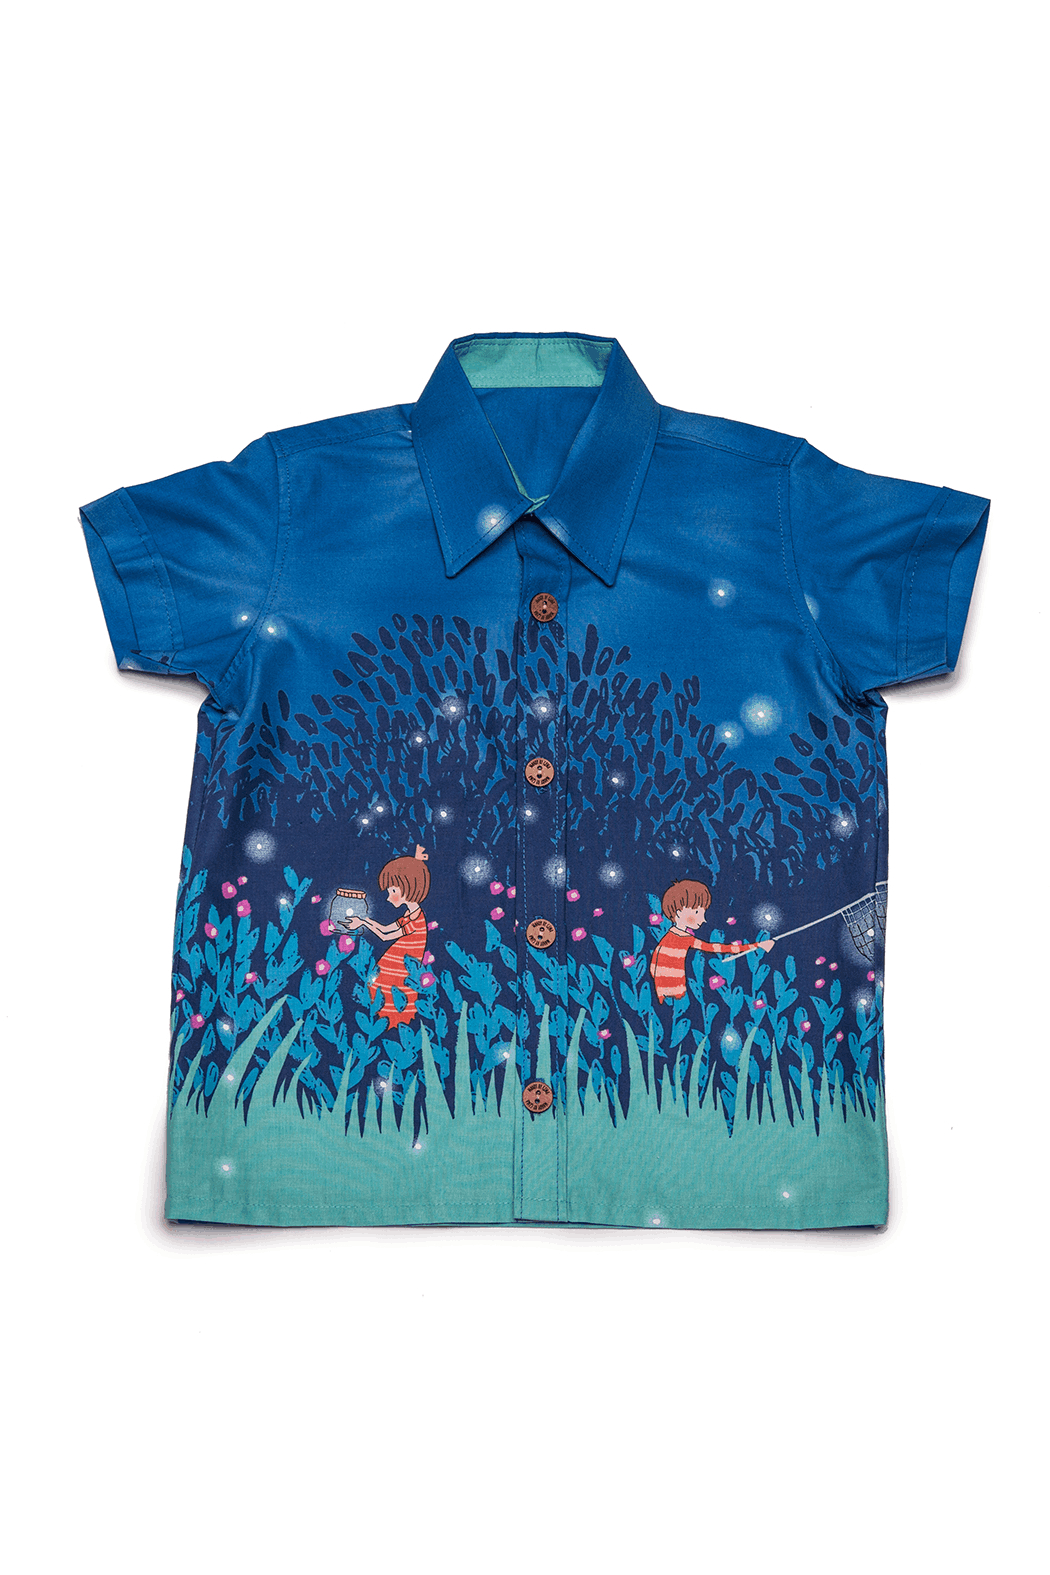 Mandy by Gema Summer Night Light Shirt - Main Image